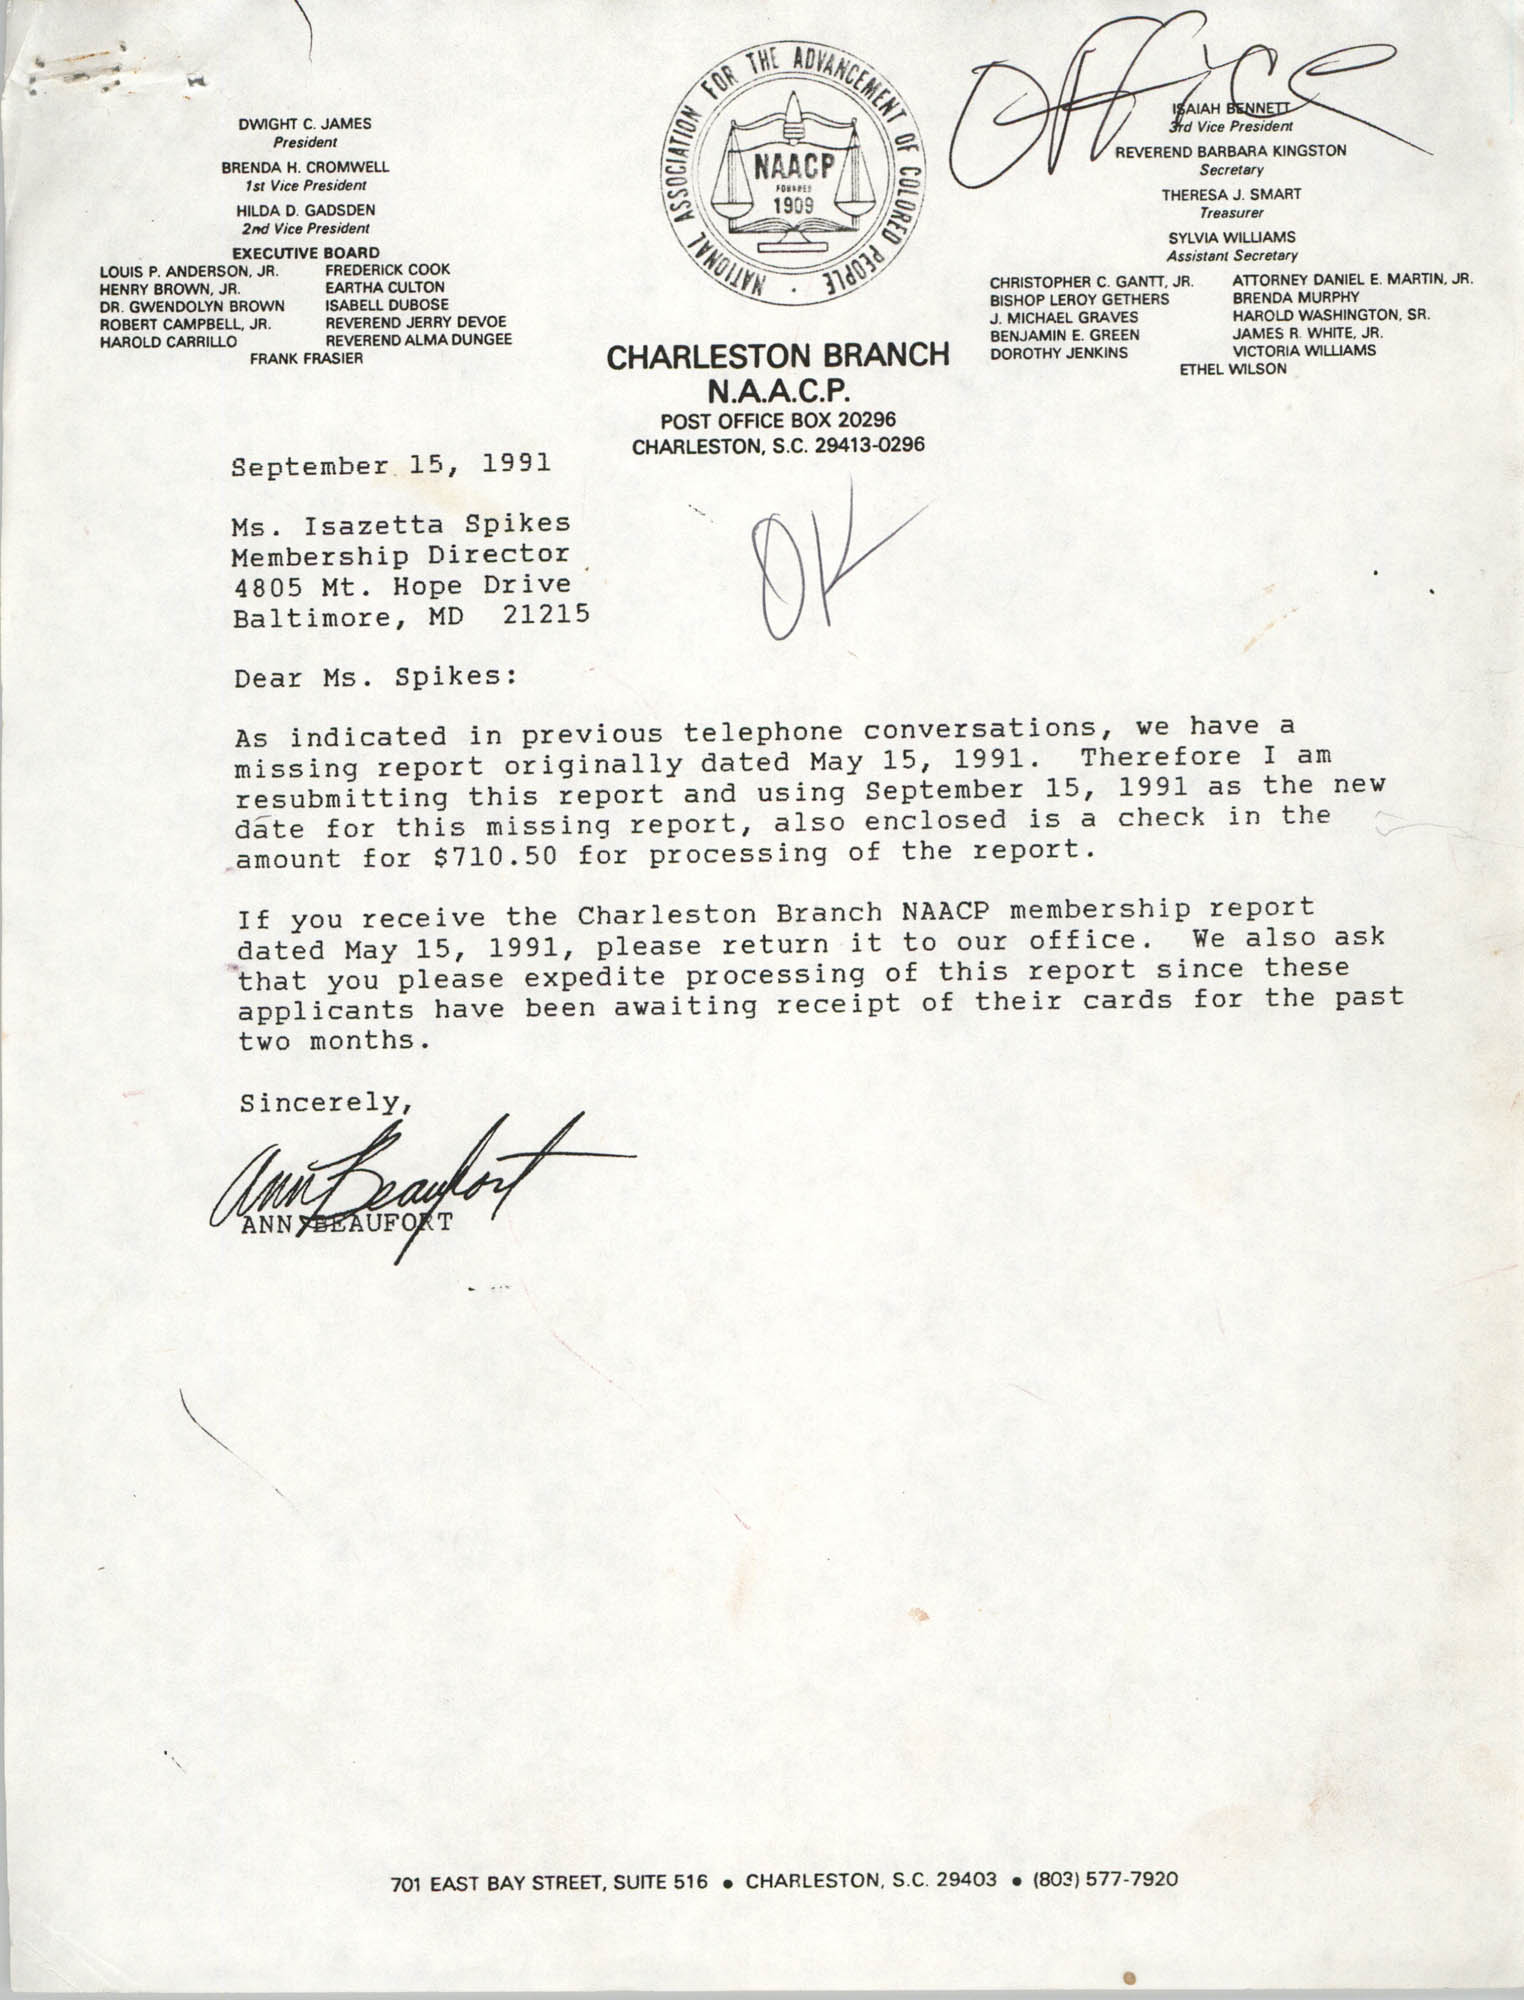 Letter from Ann Beaufort to Isazetta Spikes, September 15, 1991